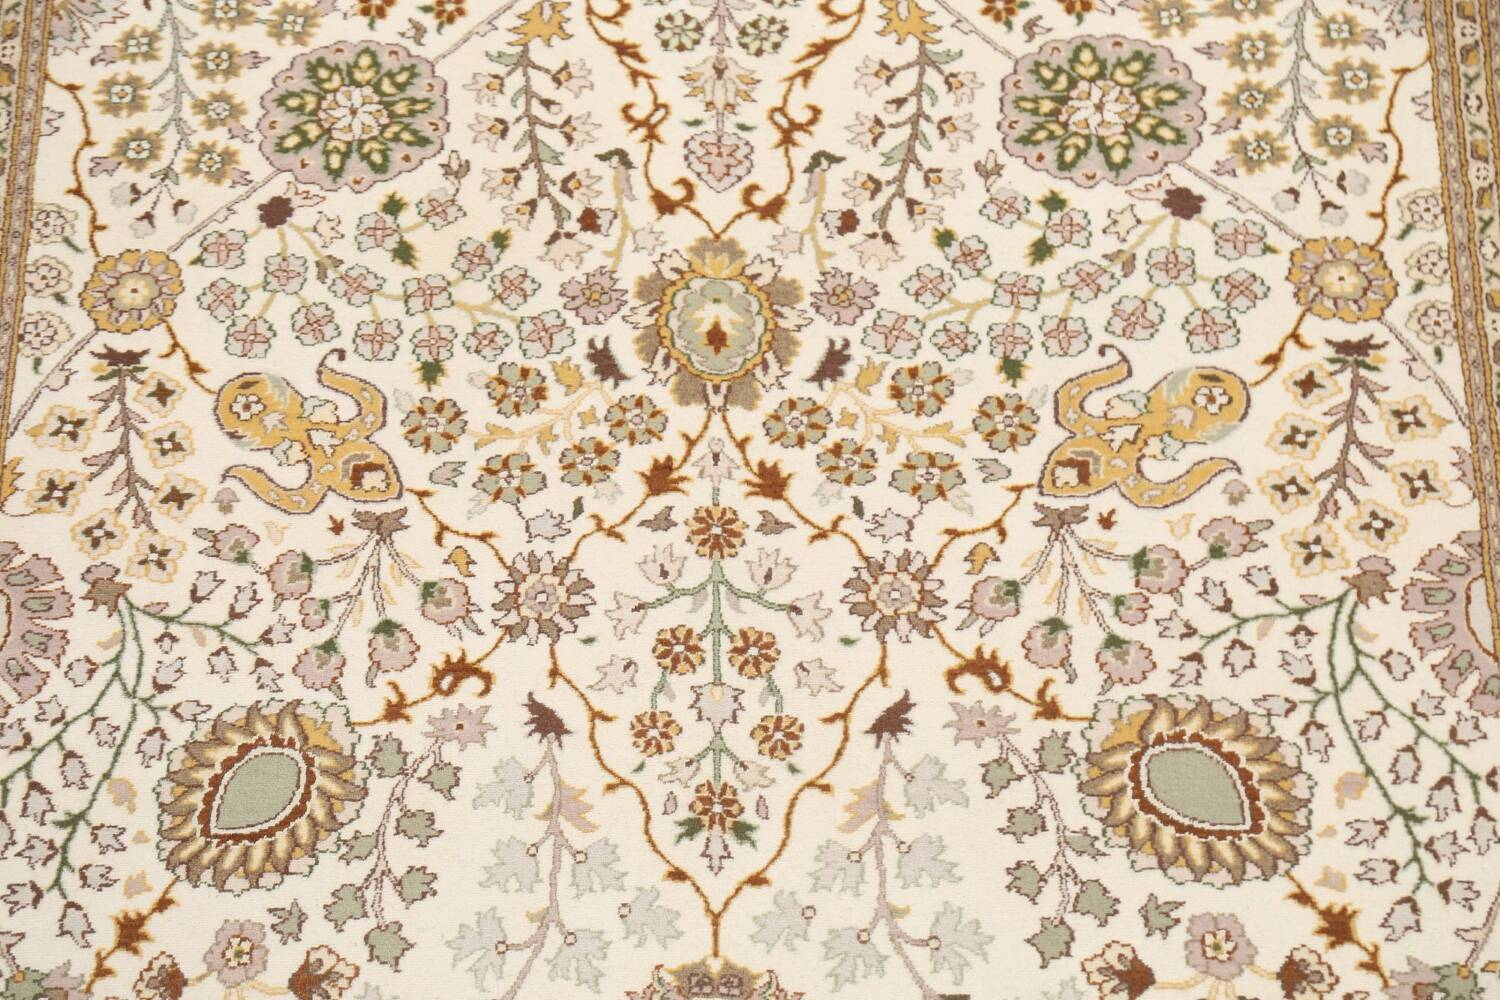 Vegetable Dye Floral Tabriz Oriental Area Rug 6x9 image 4